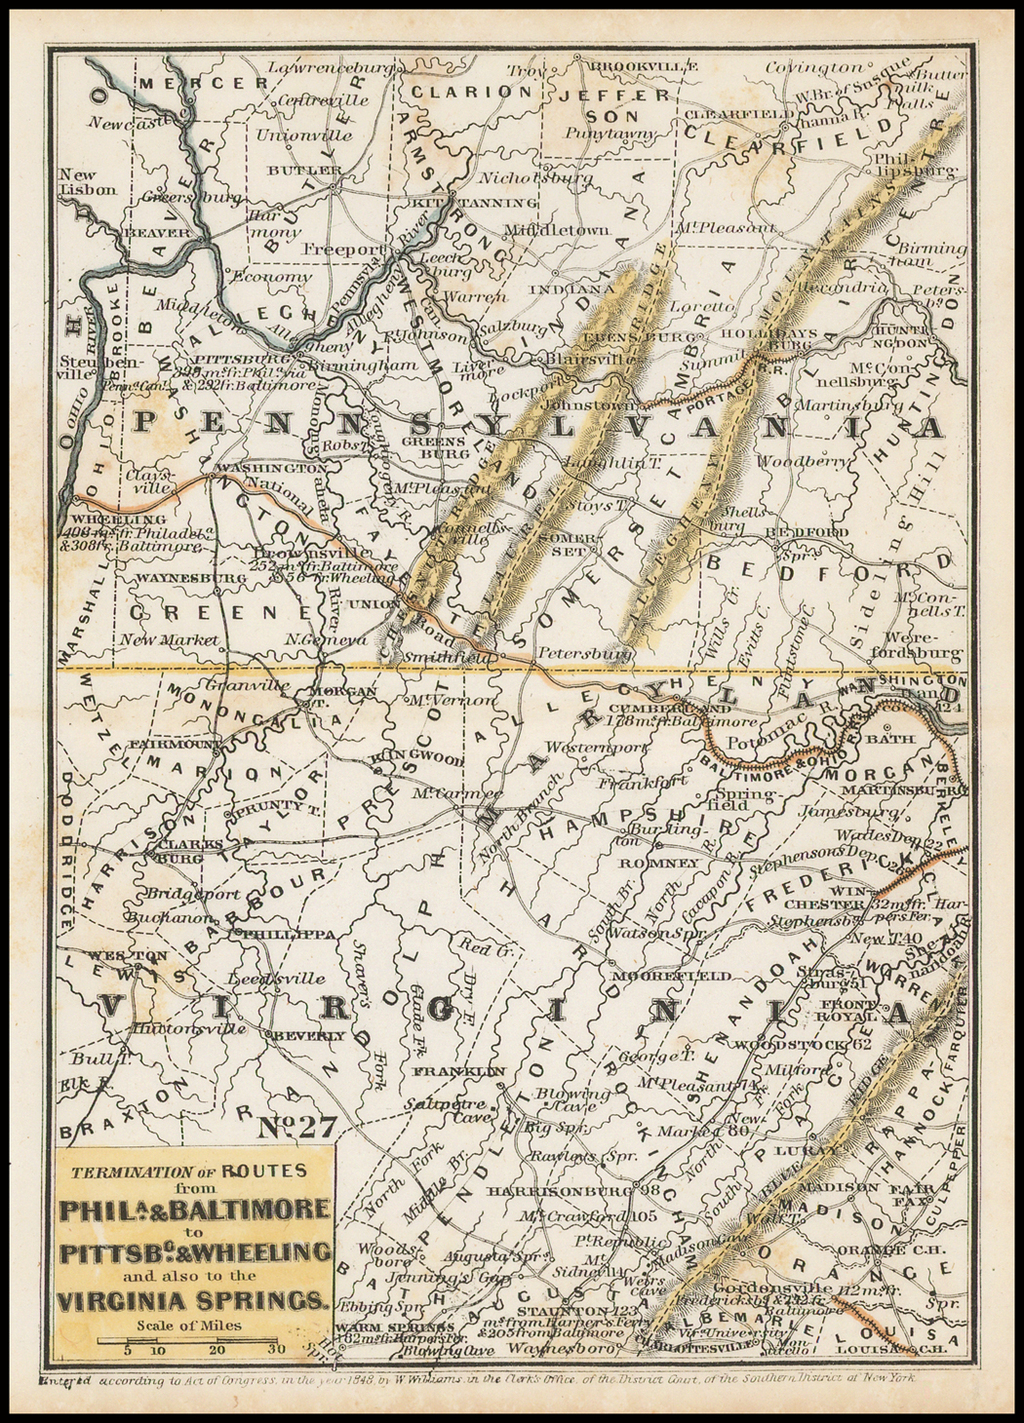 Termination of Routes From Phila. & Baltimore to Pittsbg. & Wheeling and also to Virginia Springs By Anonymous